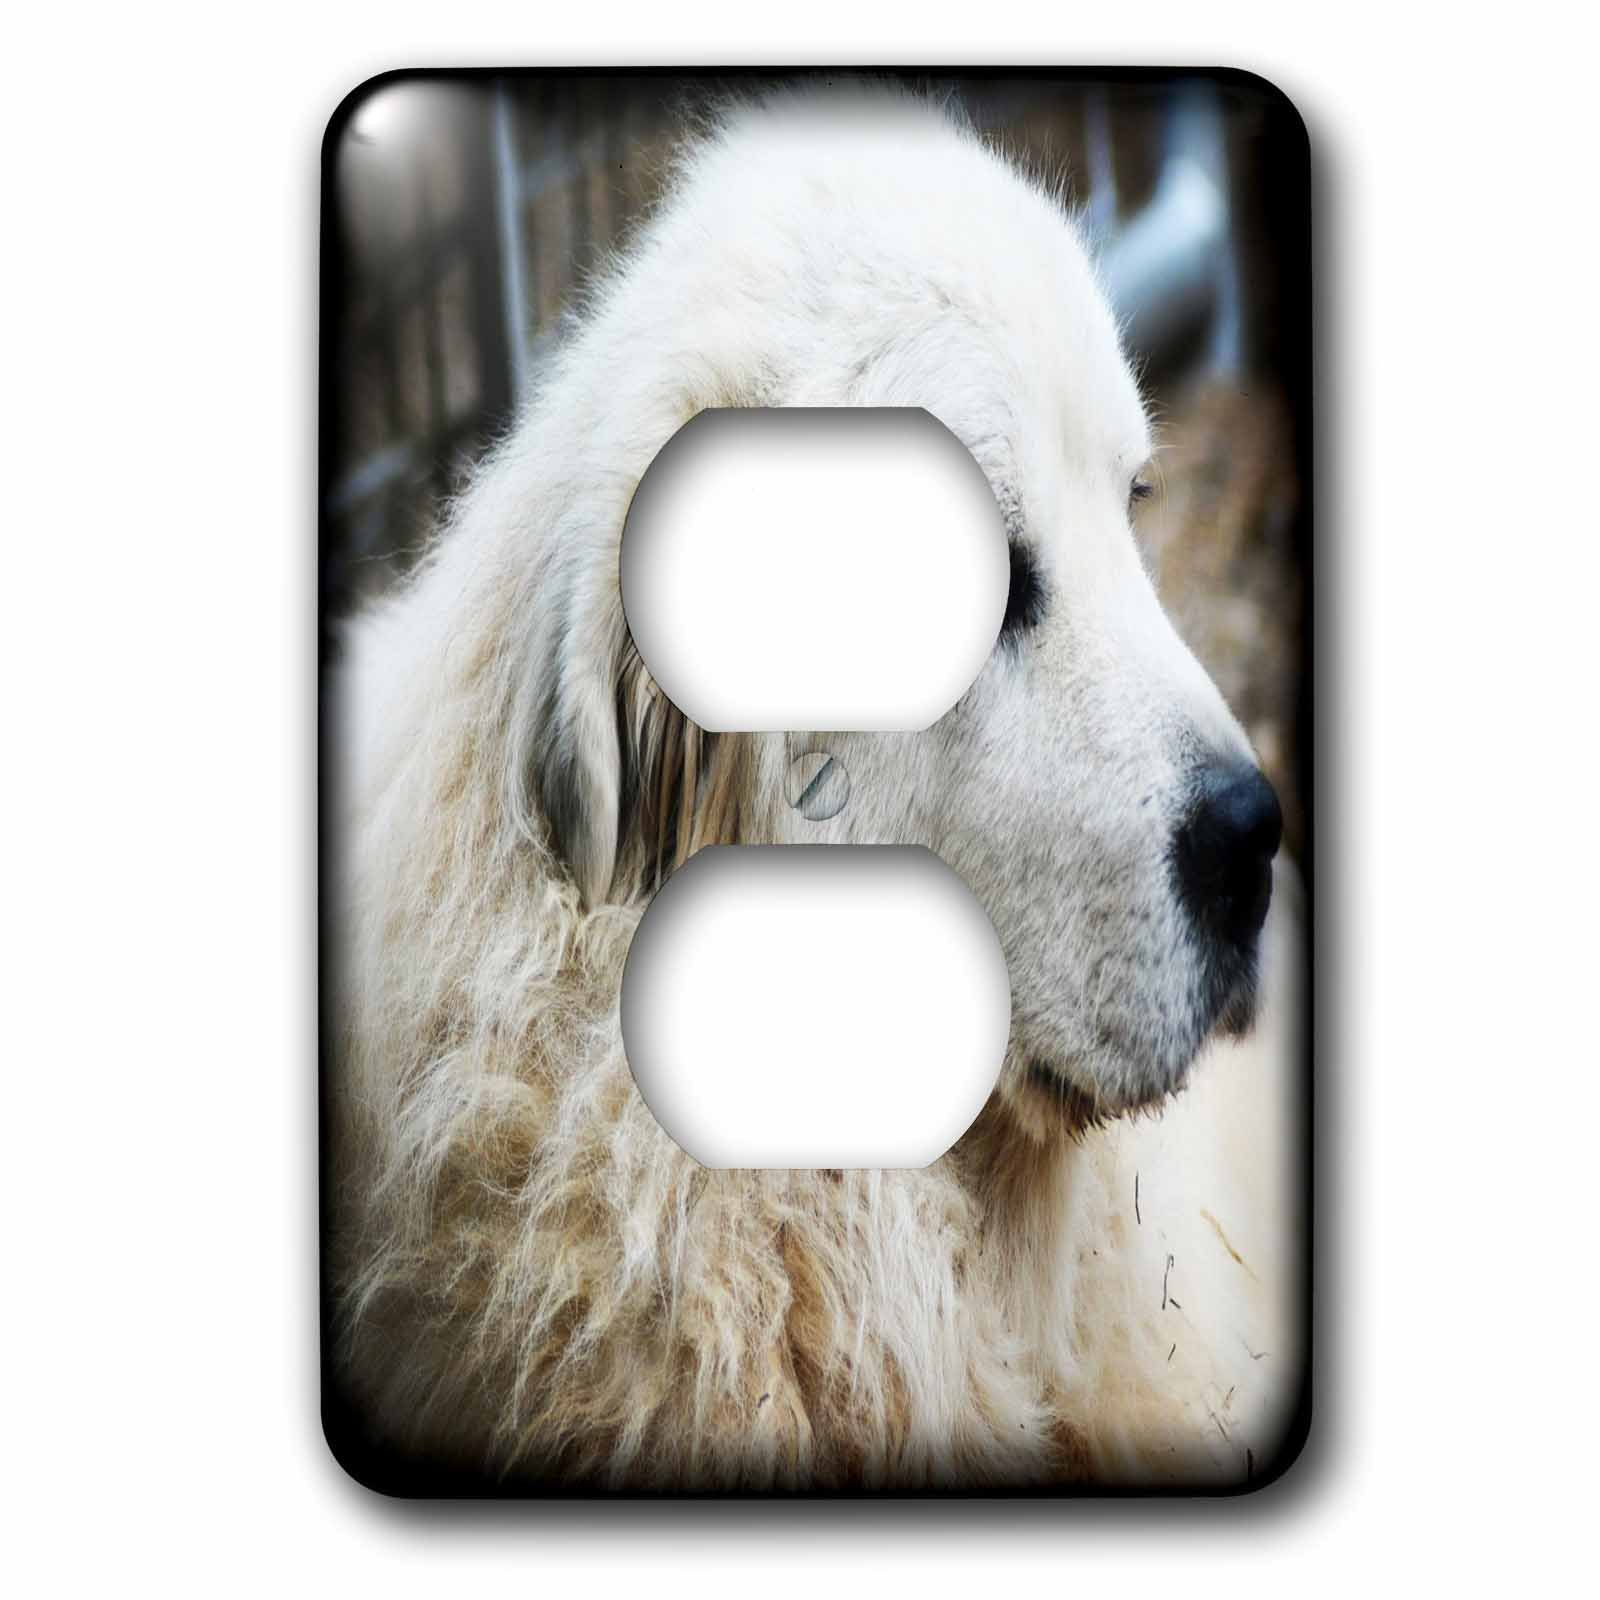 3dRose WhiteOaks Photography and Artwork - Dog Humor - Profile of a Guard Dog is an old farm dog who guards the animals - Light Switch Covers - 2 plug outlet cover (lsp_265352_6)